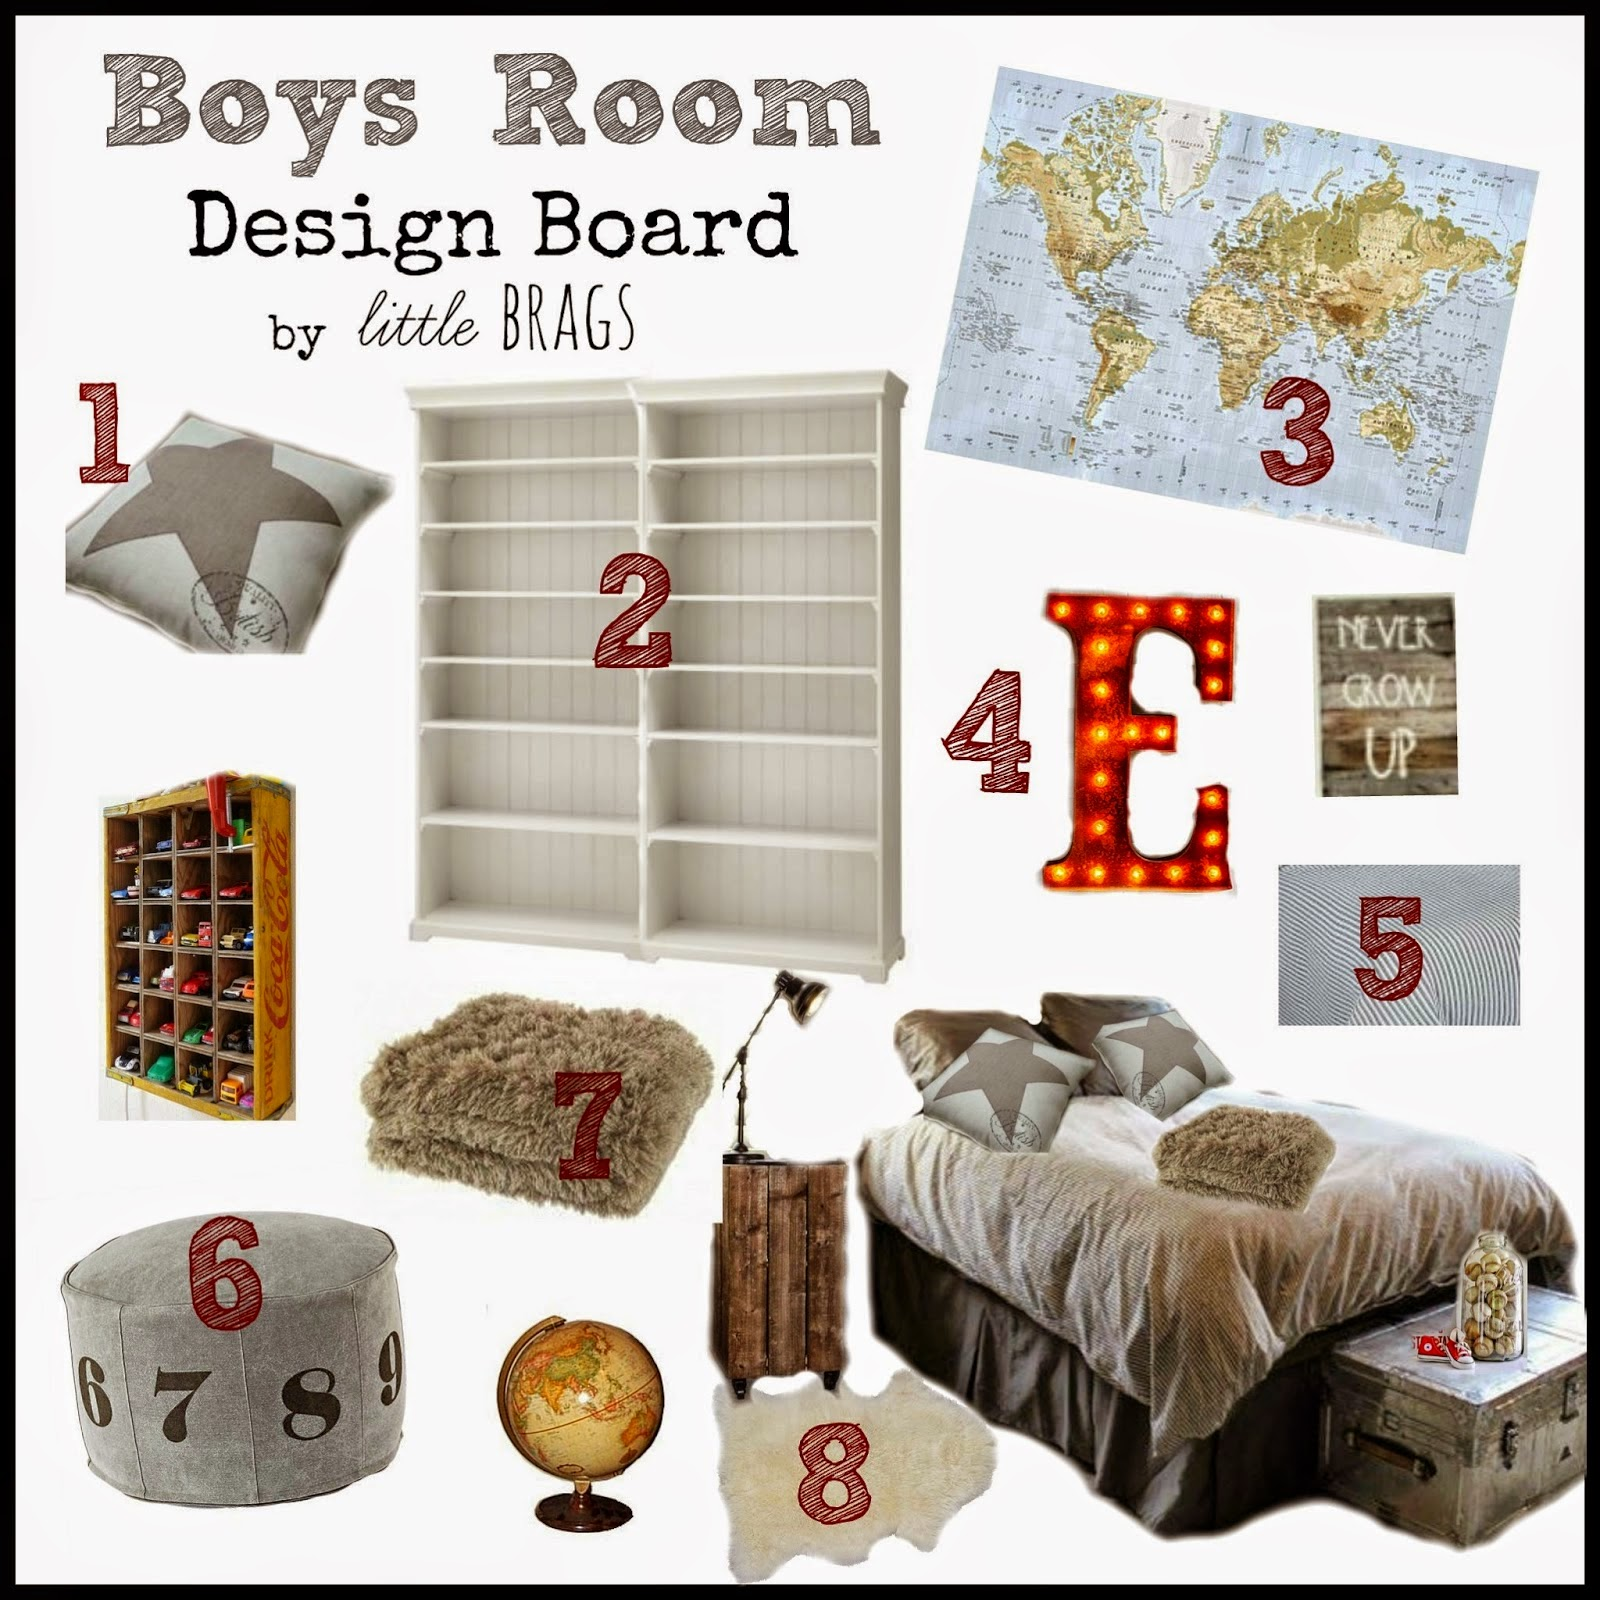 http://littlebrags.blogspot.com/2014/09/boys-bedroom-wishlist.html